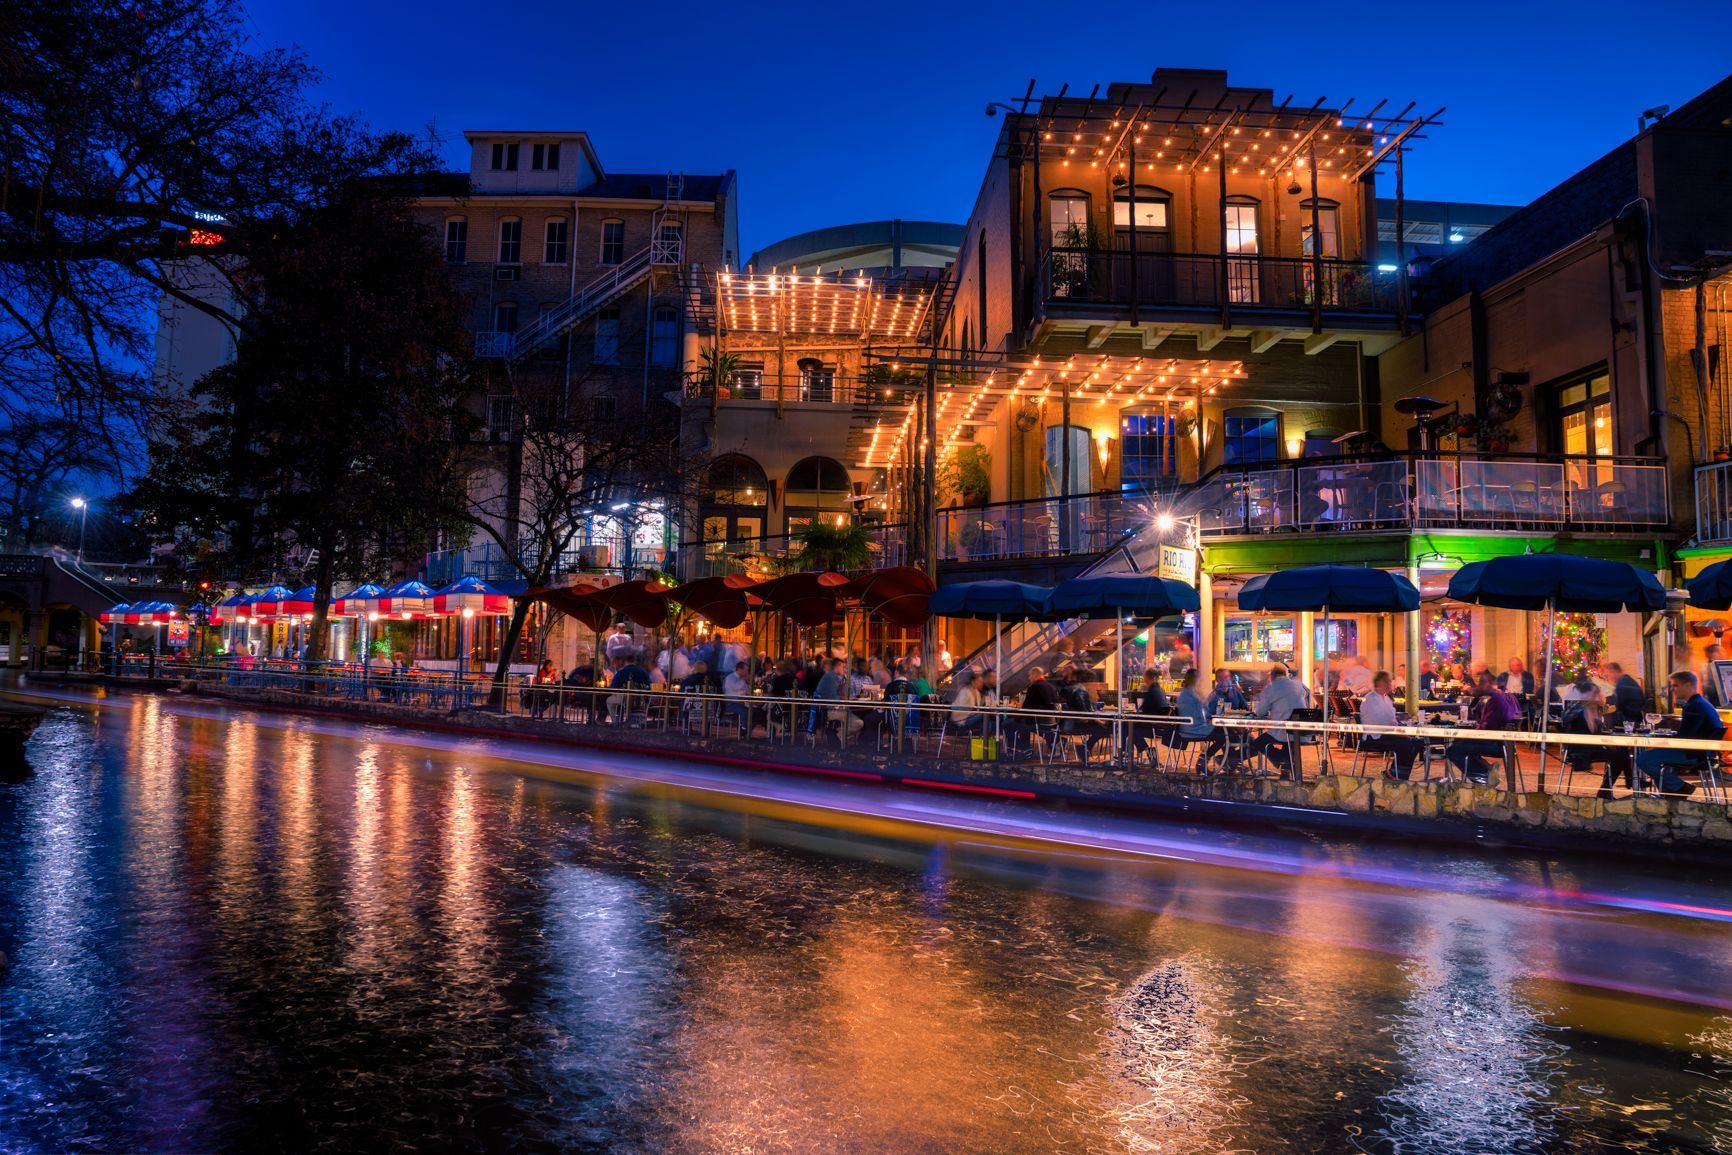 A Riverboat Passes In Front Of Some Restaurants Along The